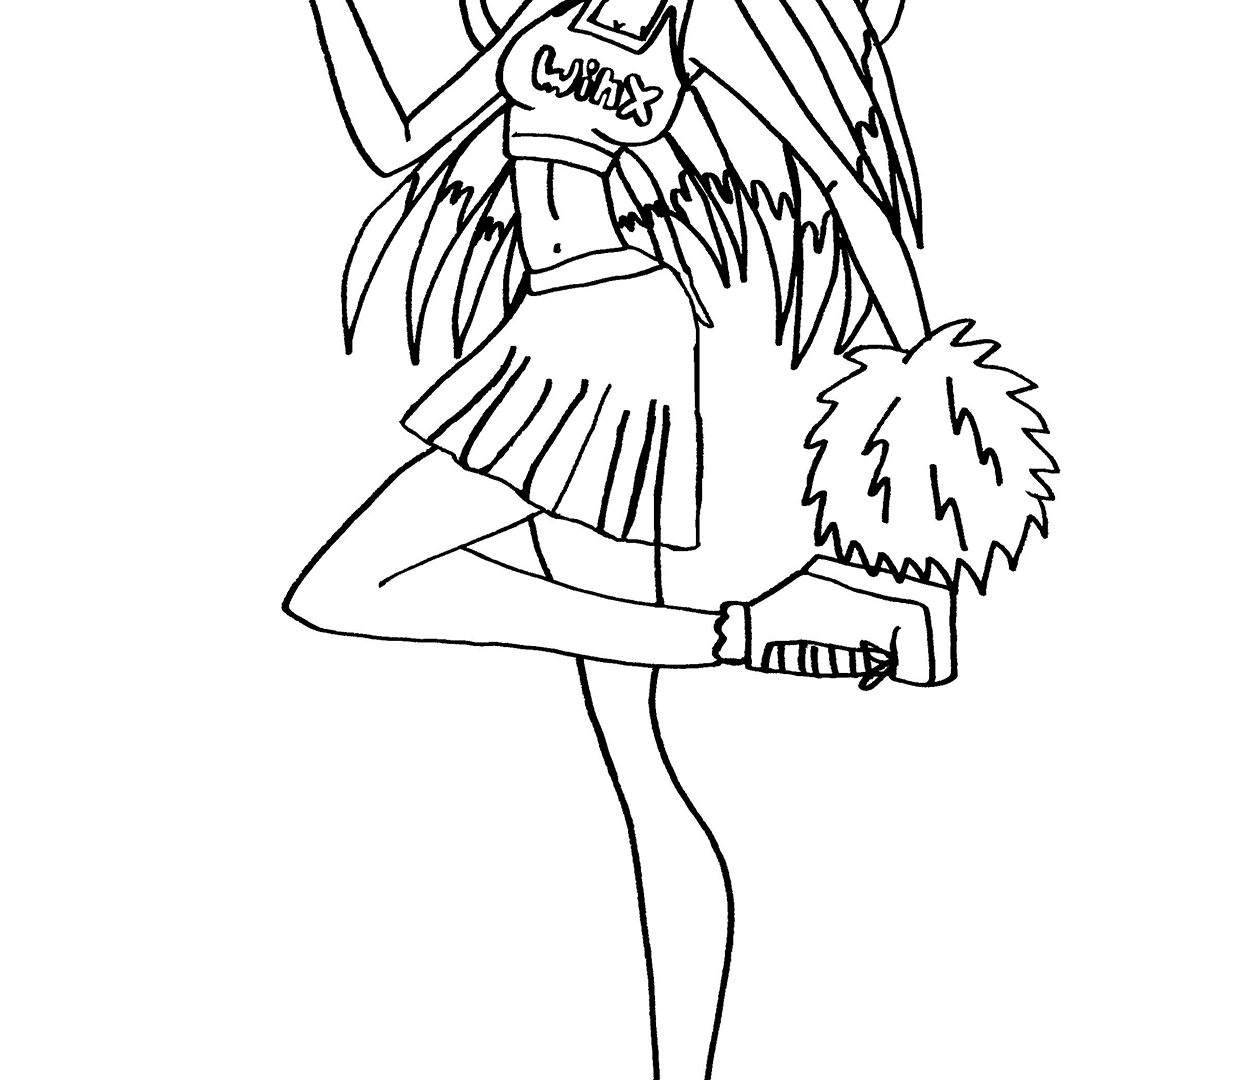 Cheerleading Drawing at GetDrawings.com | Free for personal use ...